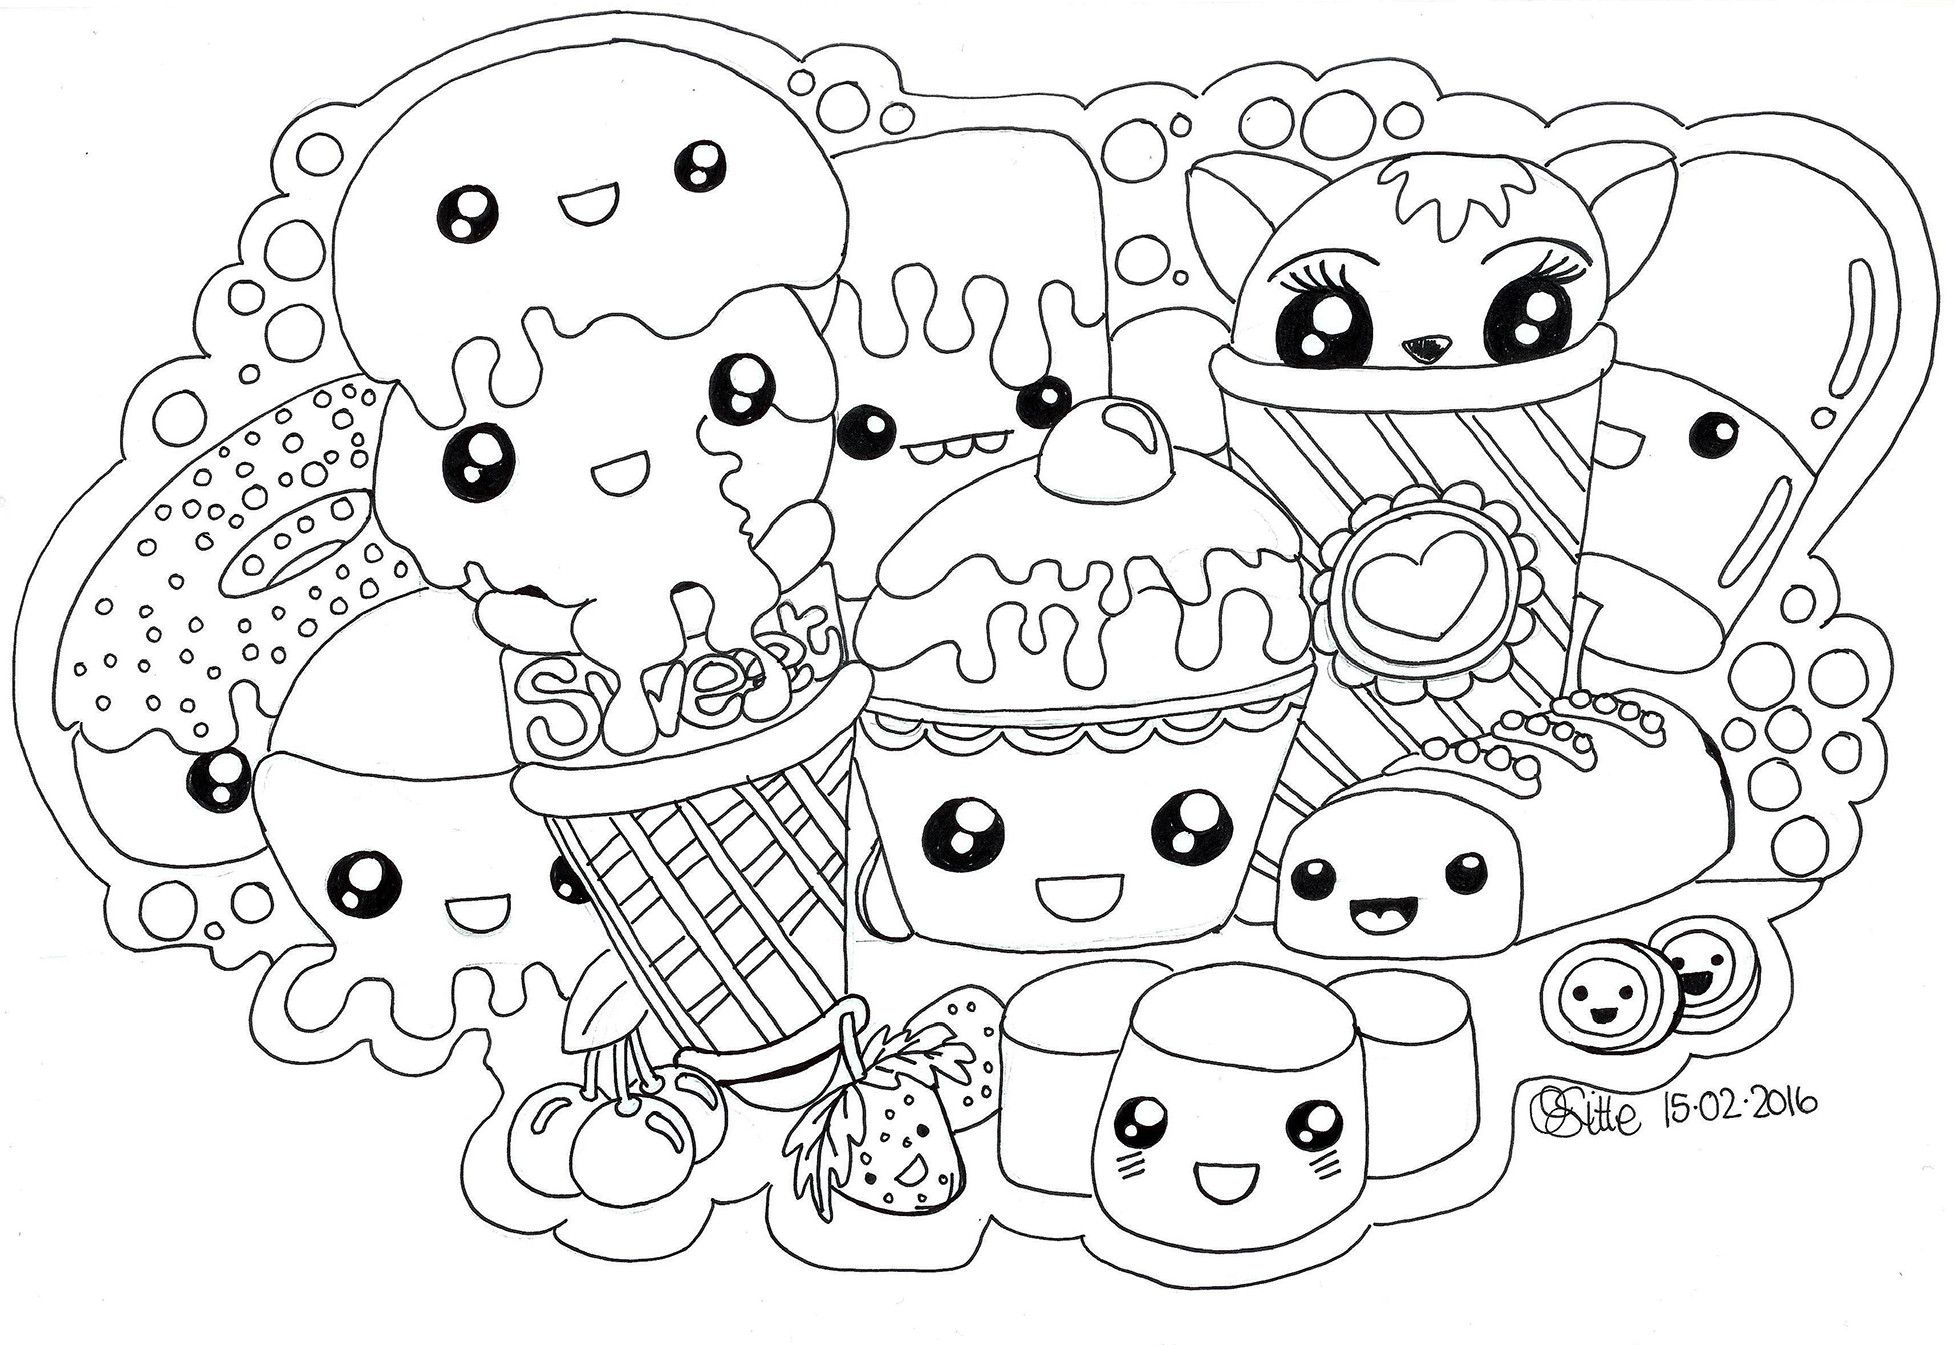 Kawaii Coloring Pages Coloring Rocks In 2020 Unicorn Coloring Pages Doodle Coloring Cute Coloring Pages